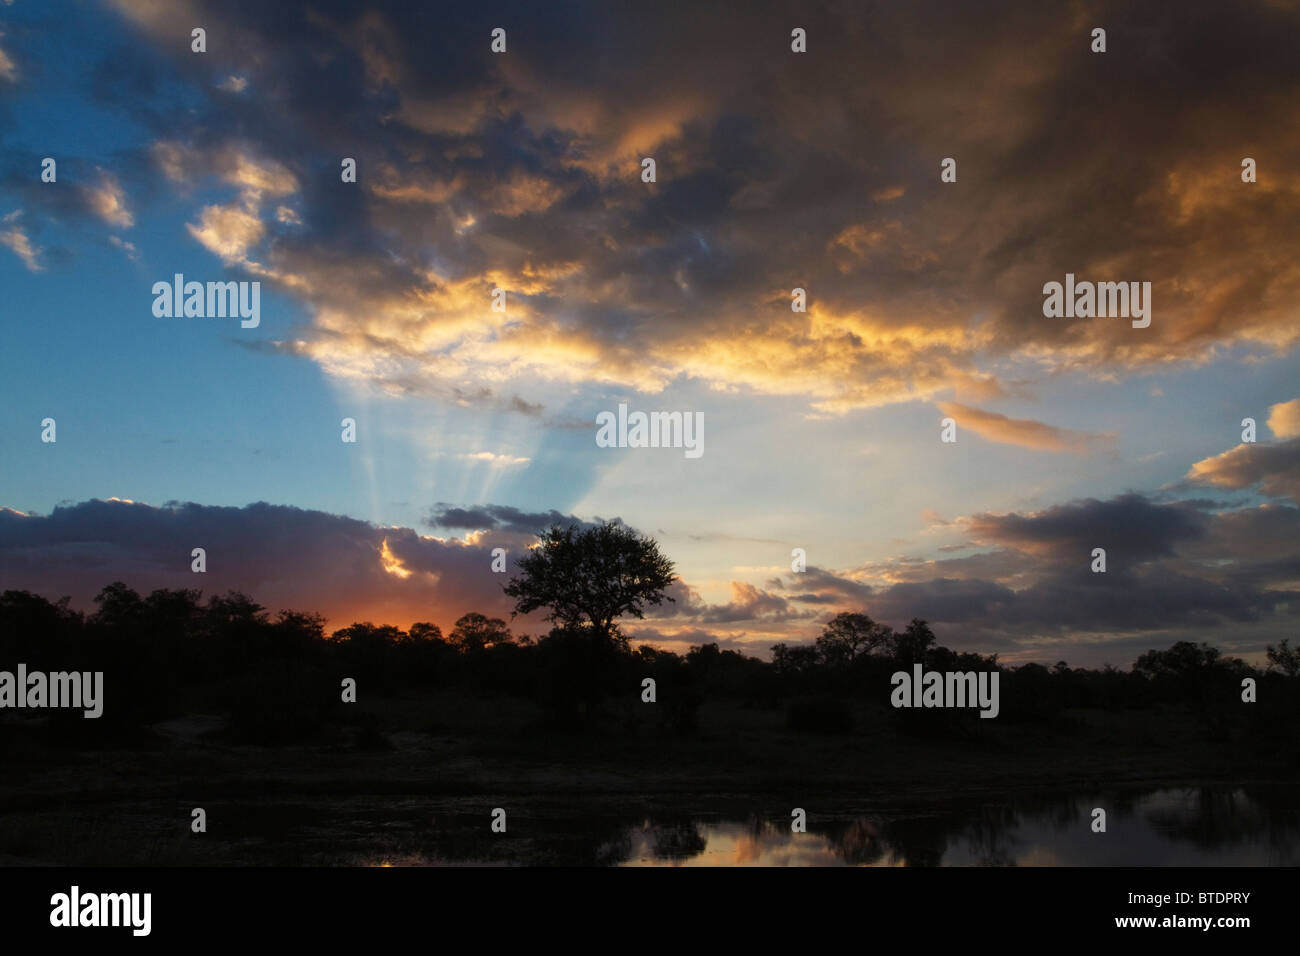 Moody bushveld sunset showing rays of sun illuminating a cloud reflected in water in the foreground - Stock Image